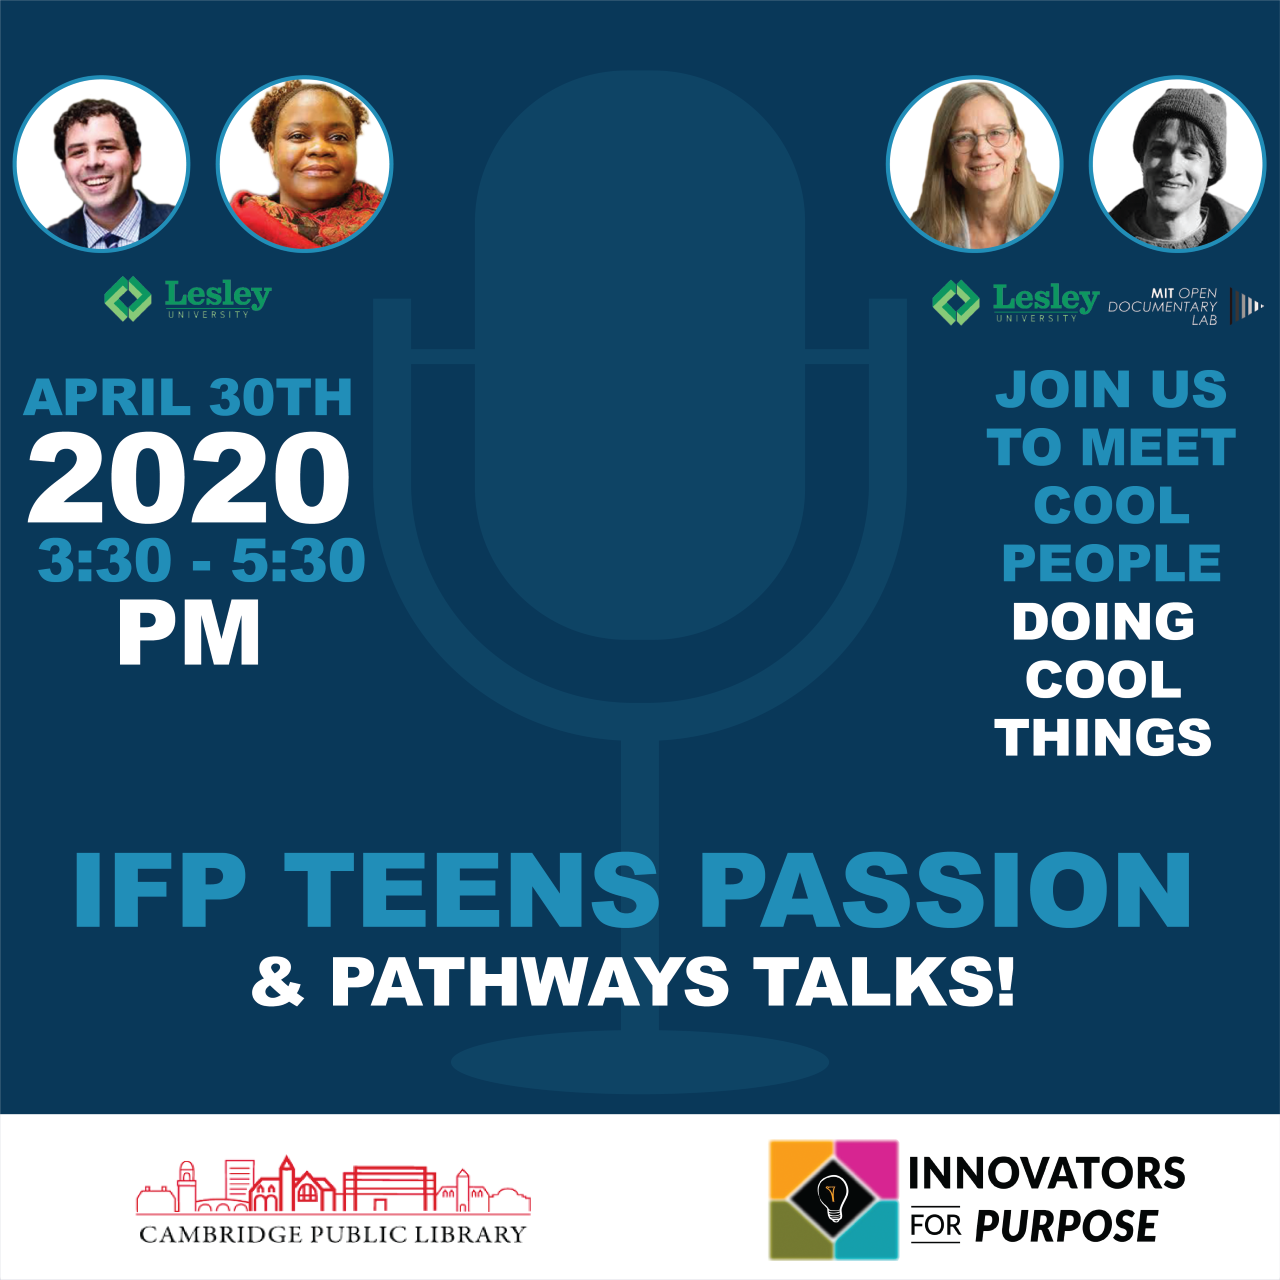 Passion & Pathways: ANewVirtualSeries for Teens